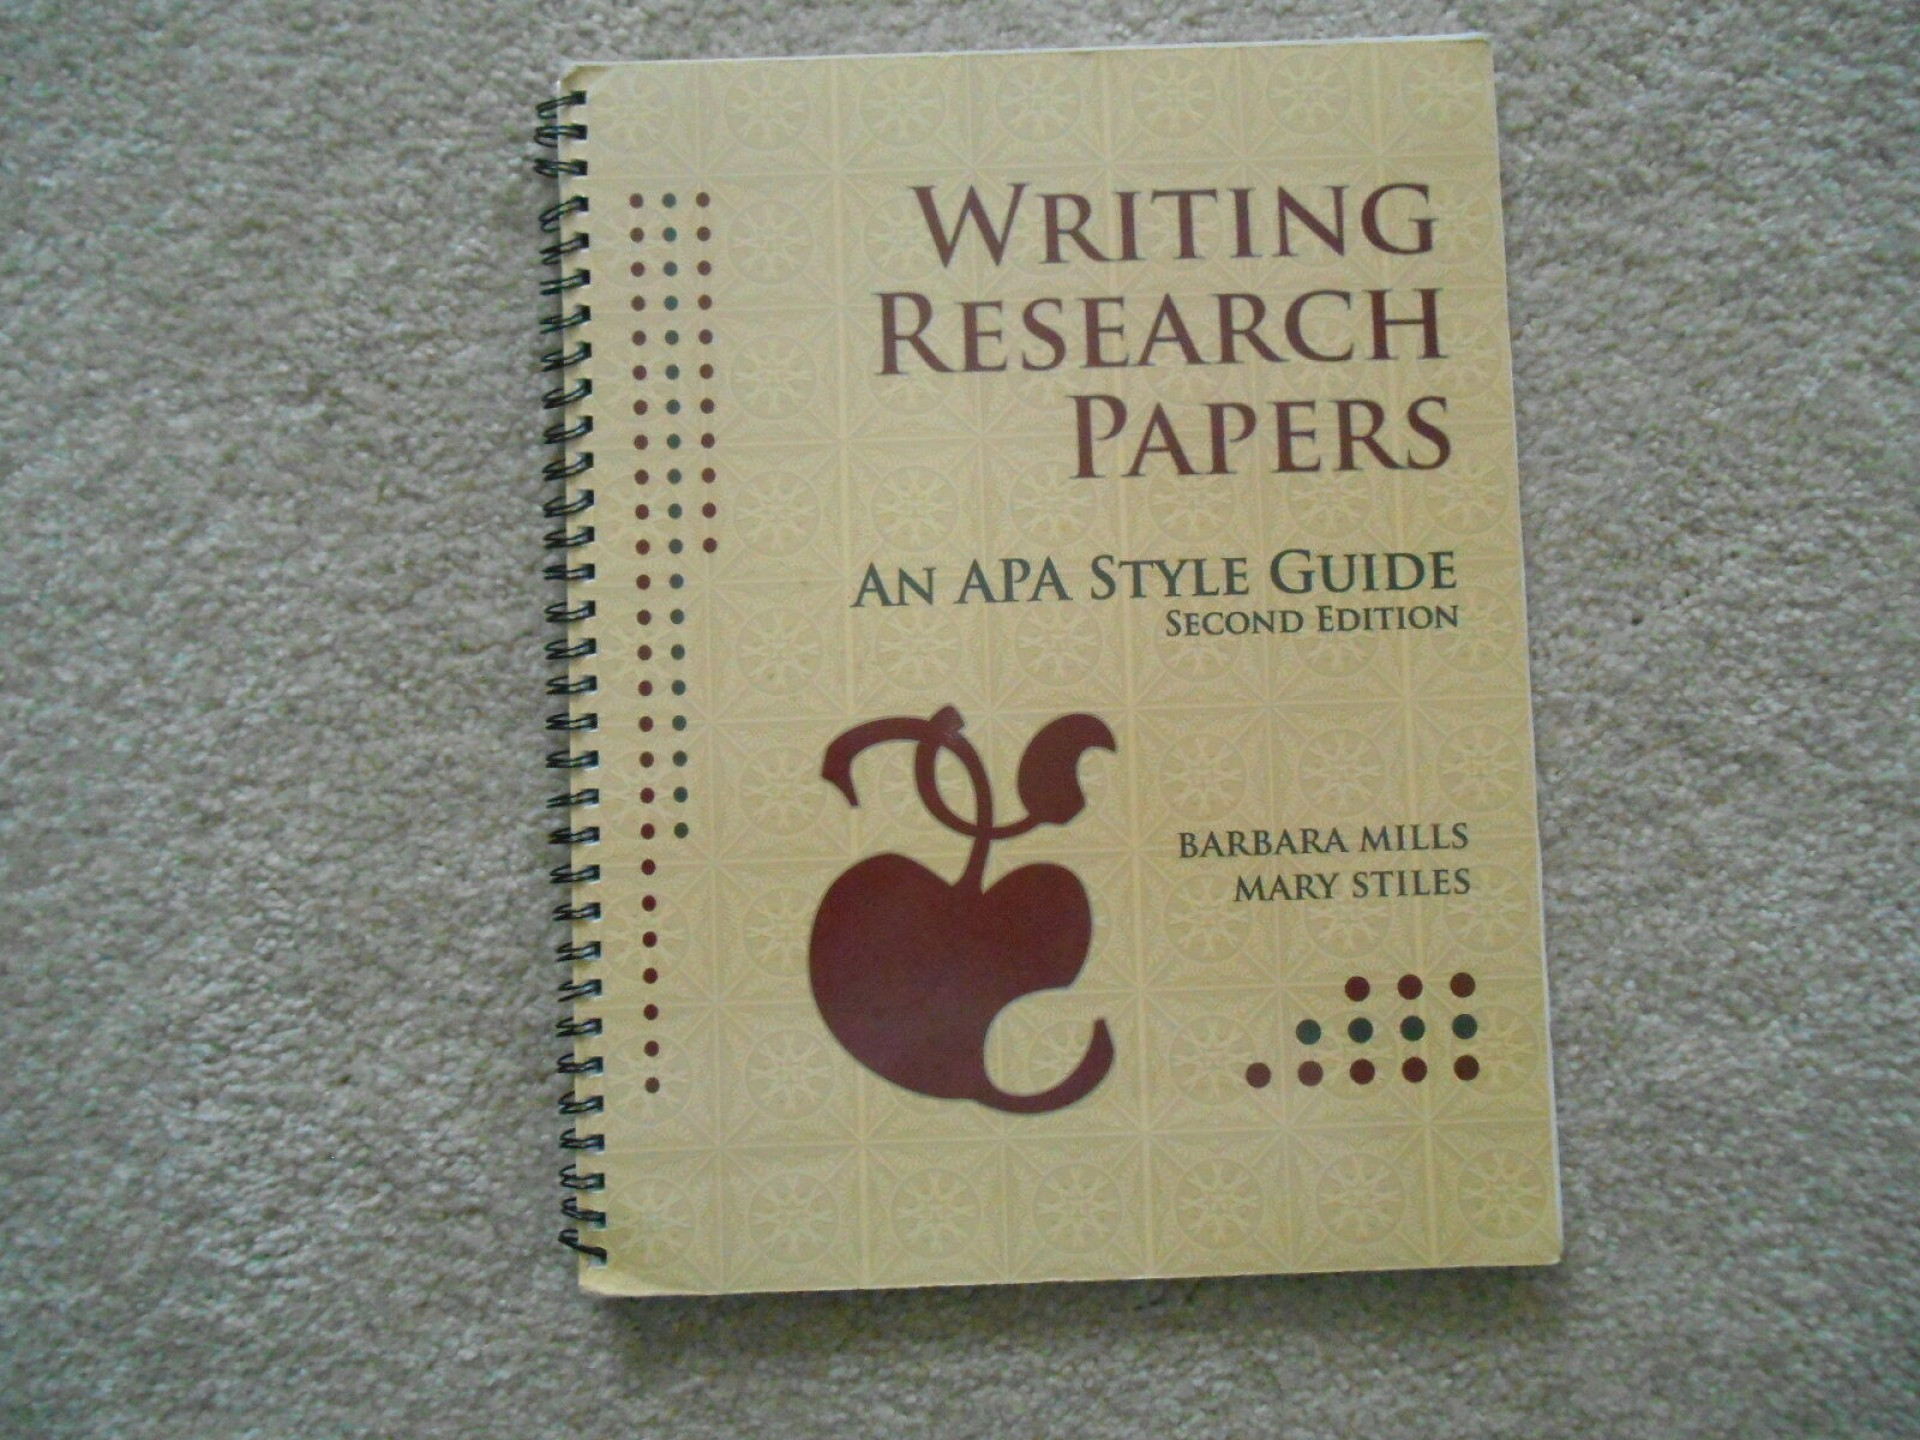 018 Apa Style Guide For Writing Researchs S L1600 Best Research Papers 1920